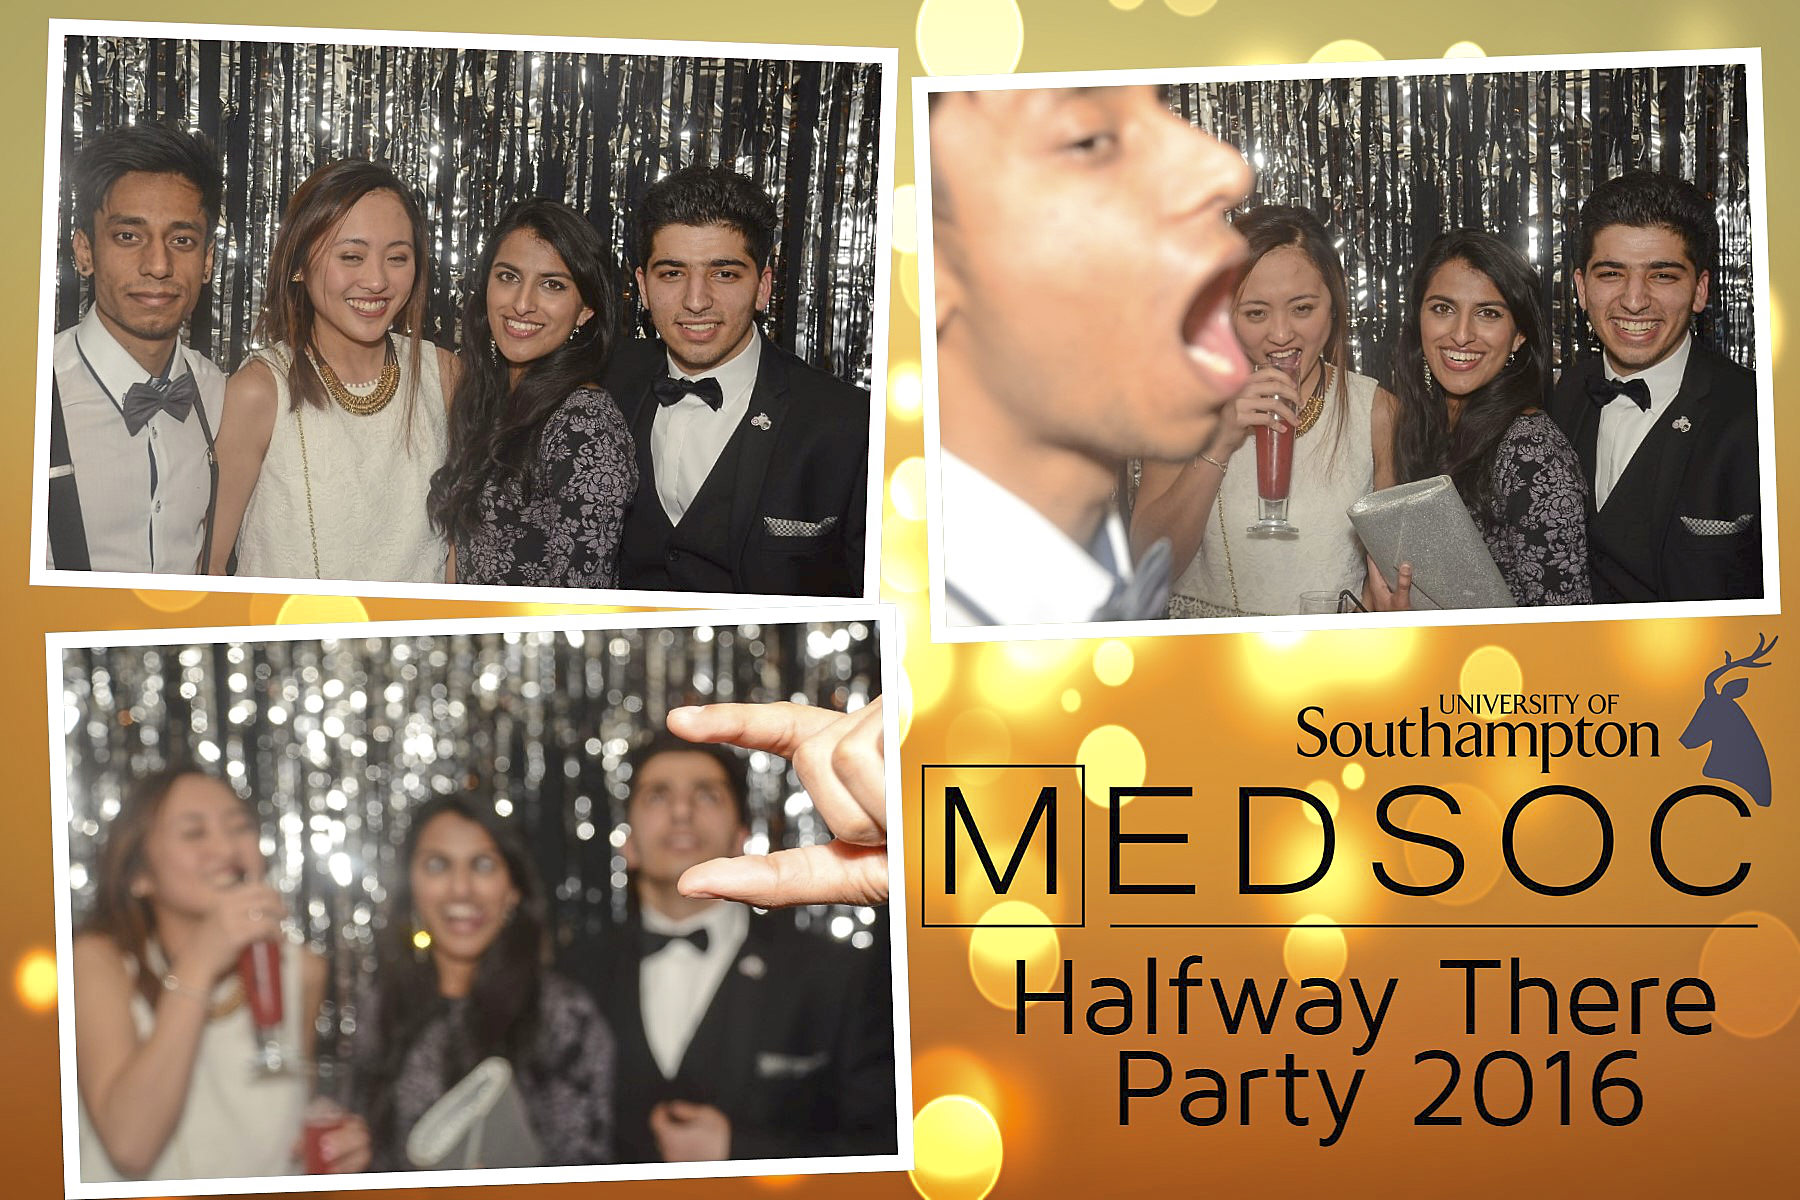 MedSoc Halfway There Party 2016 DS223648.jpg